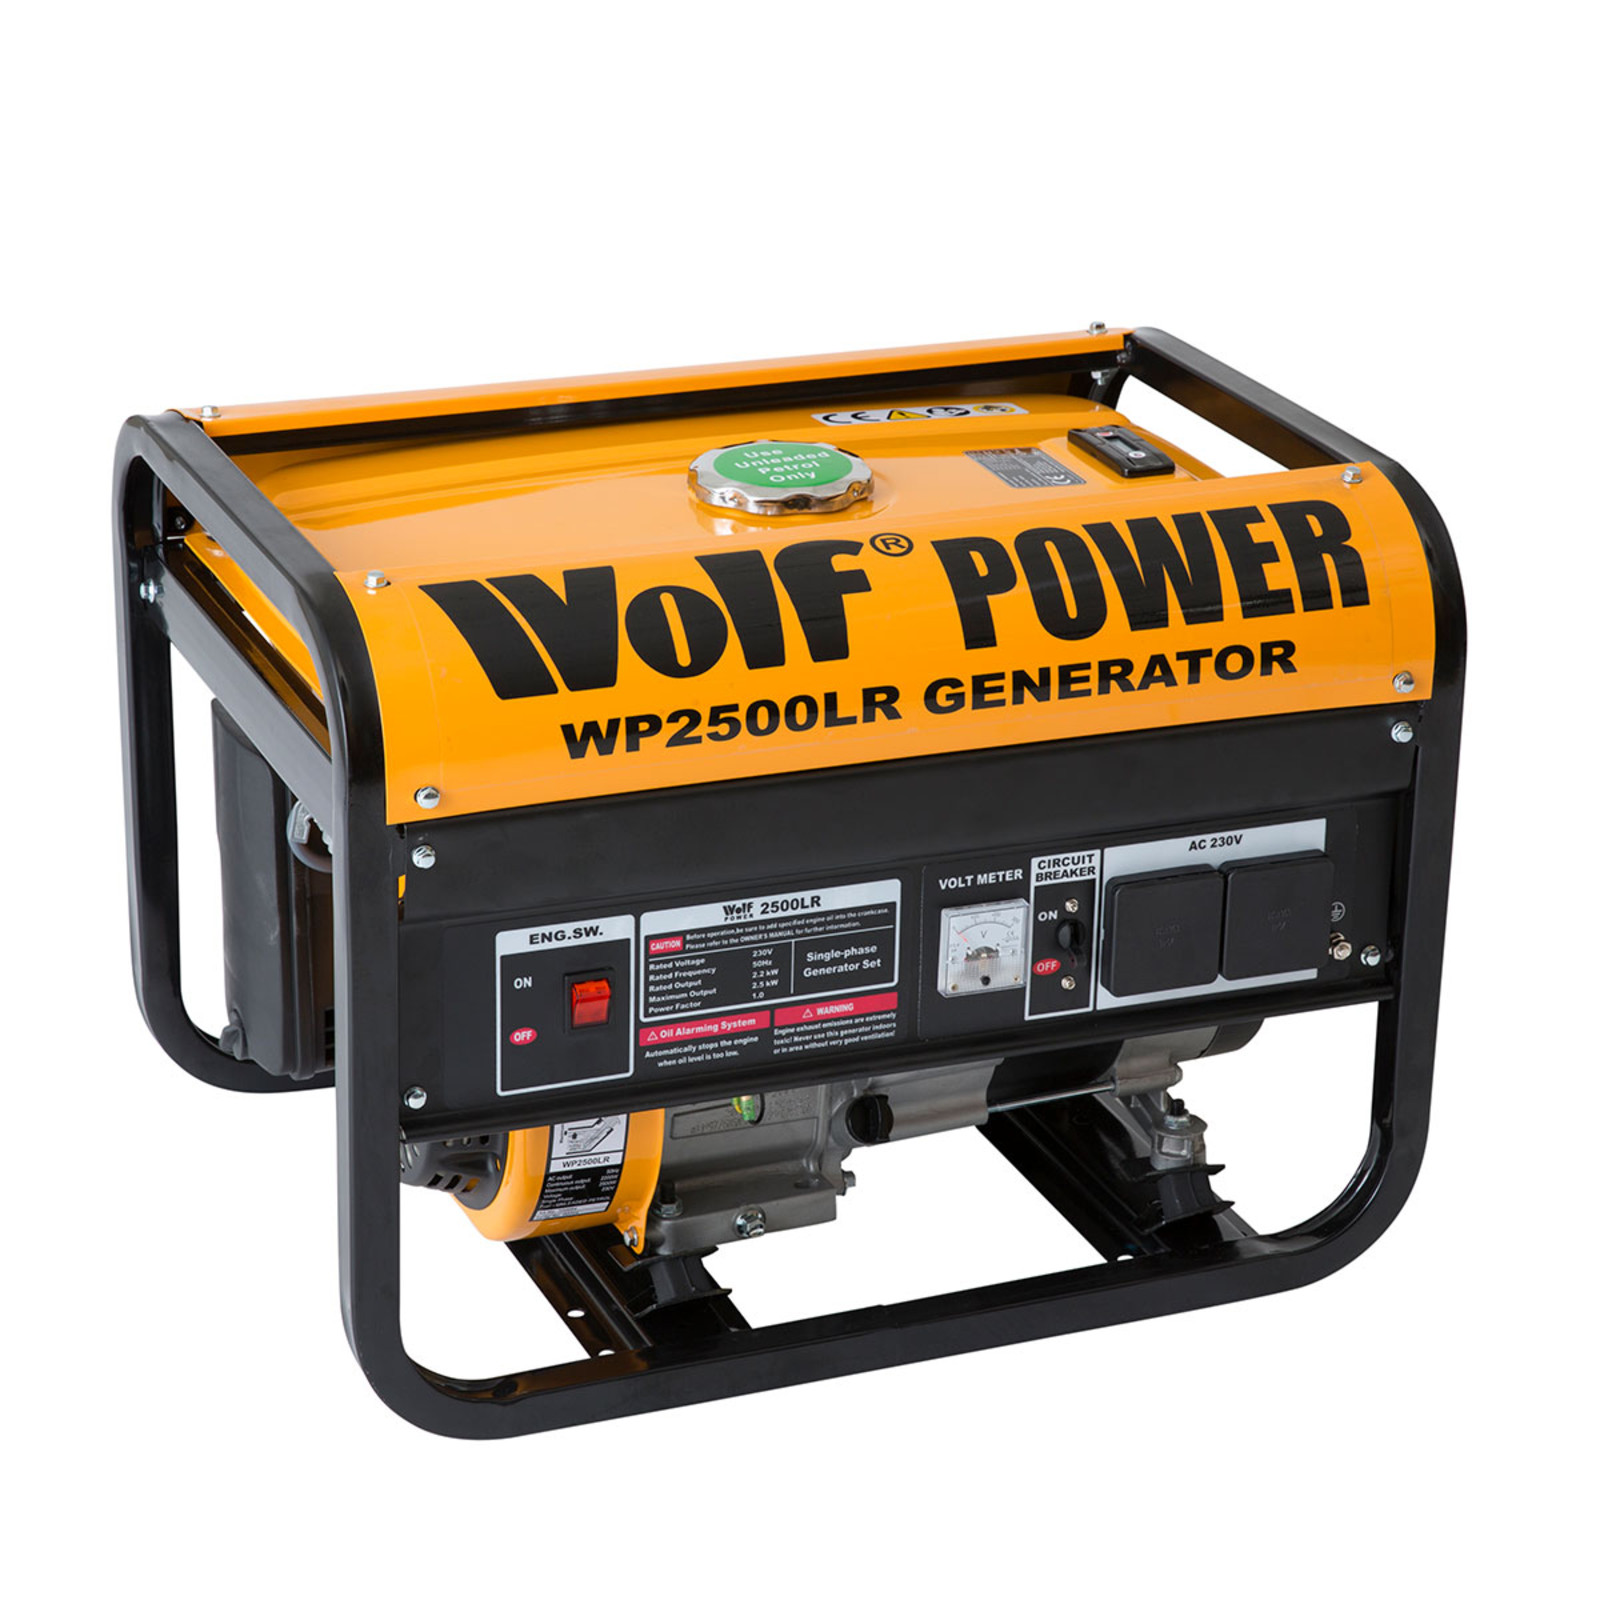 Wolf 2500w petrol generator with 2 x 240v sockets ukhs tools to go wolf wp2500lr petrol generator click on the image to enlarge asfbconference2016 Gallery